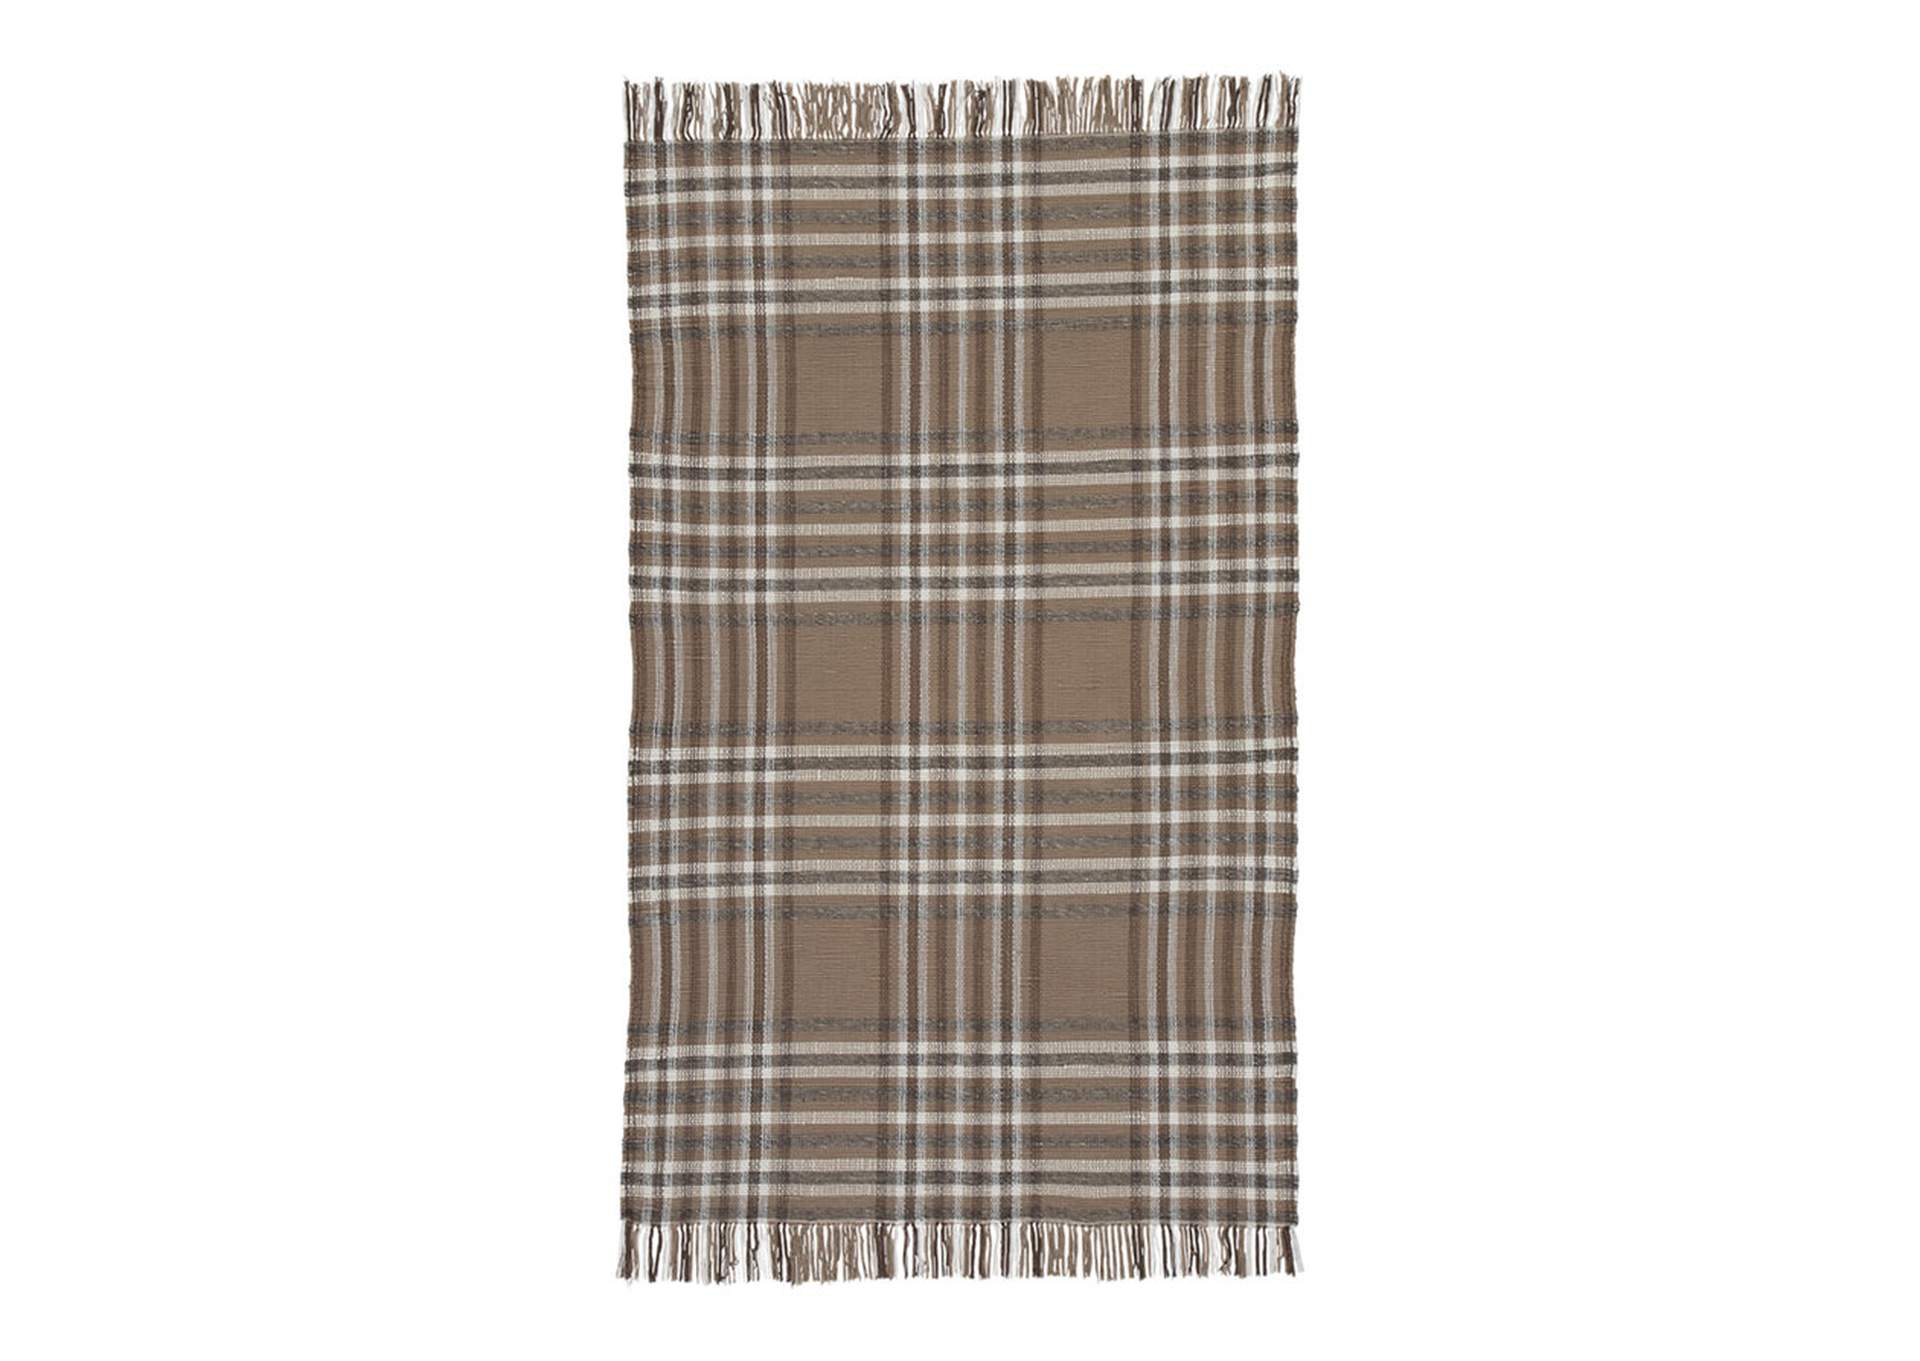 Hardy Beige/Brown Large Rug,Signature Design By Ashley